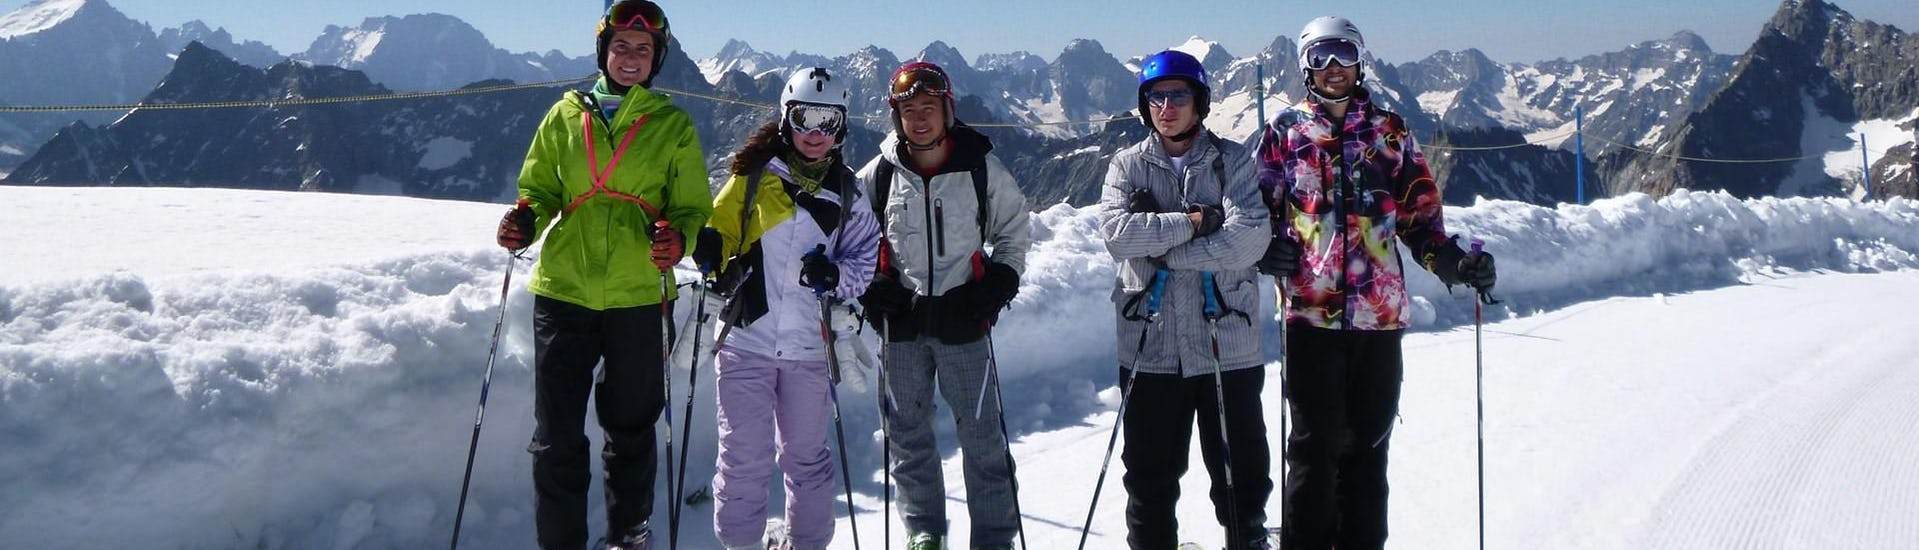 Ski Lessons for Teens & Adults - Afternoon